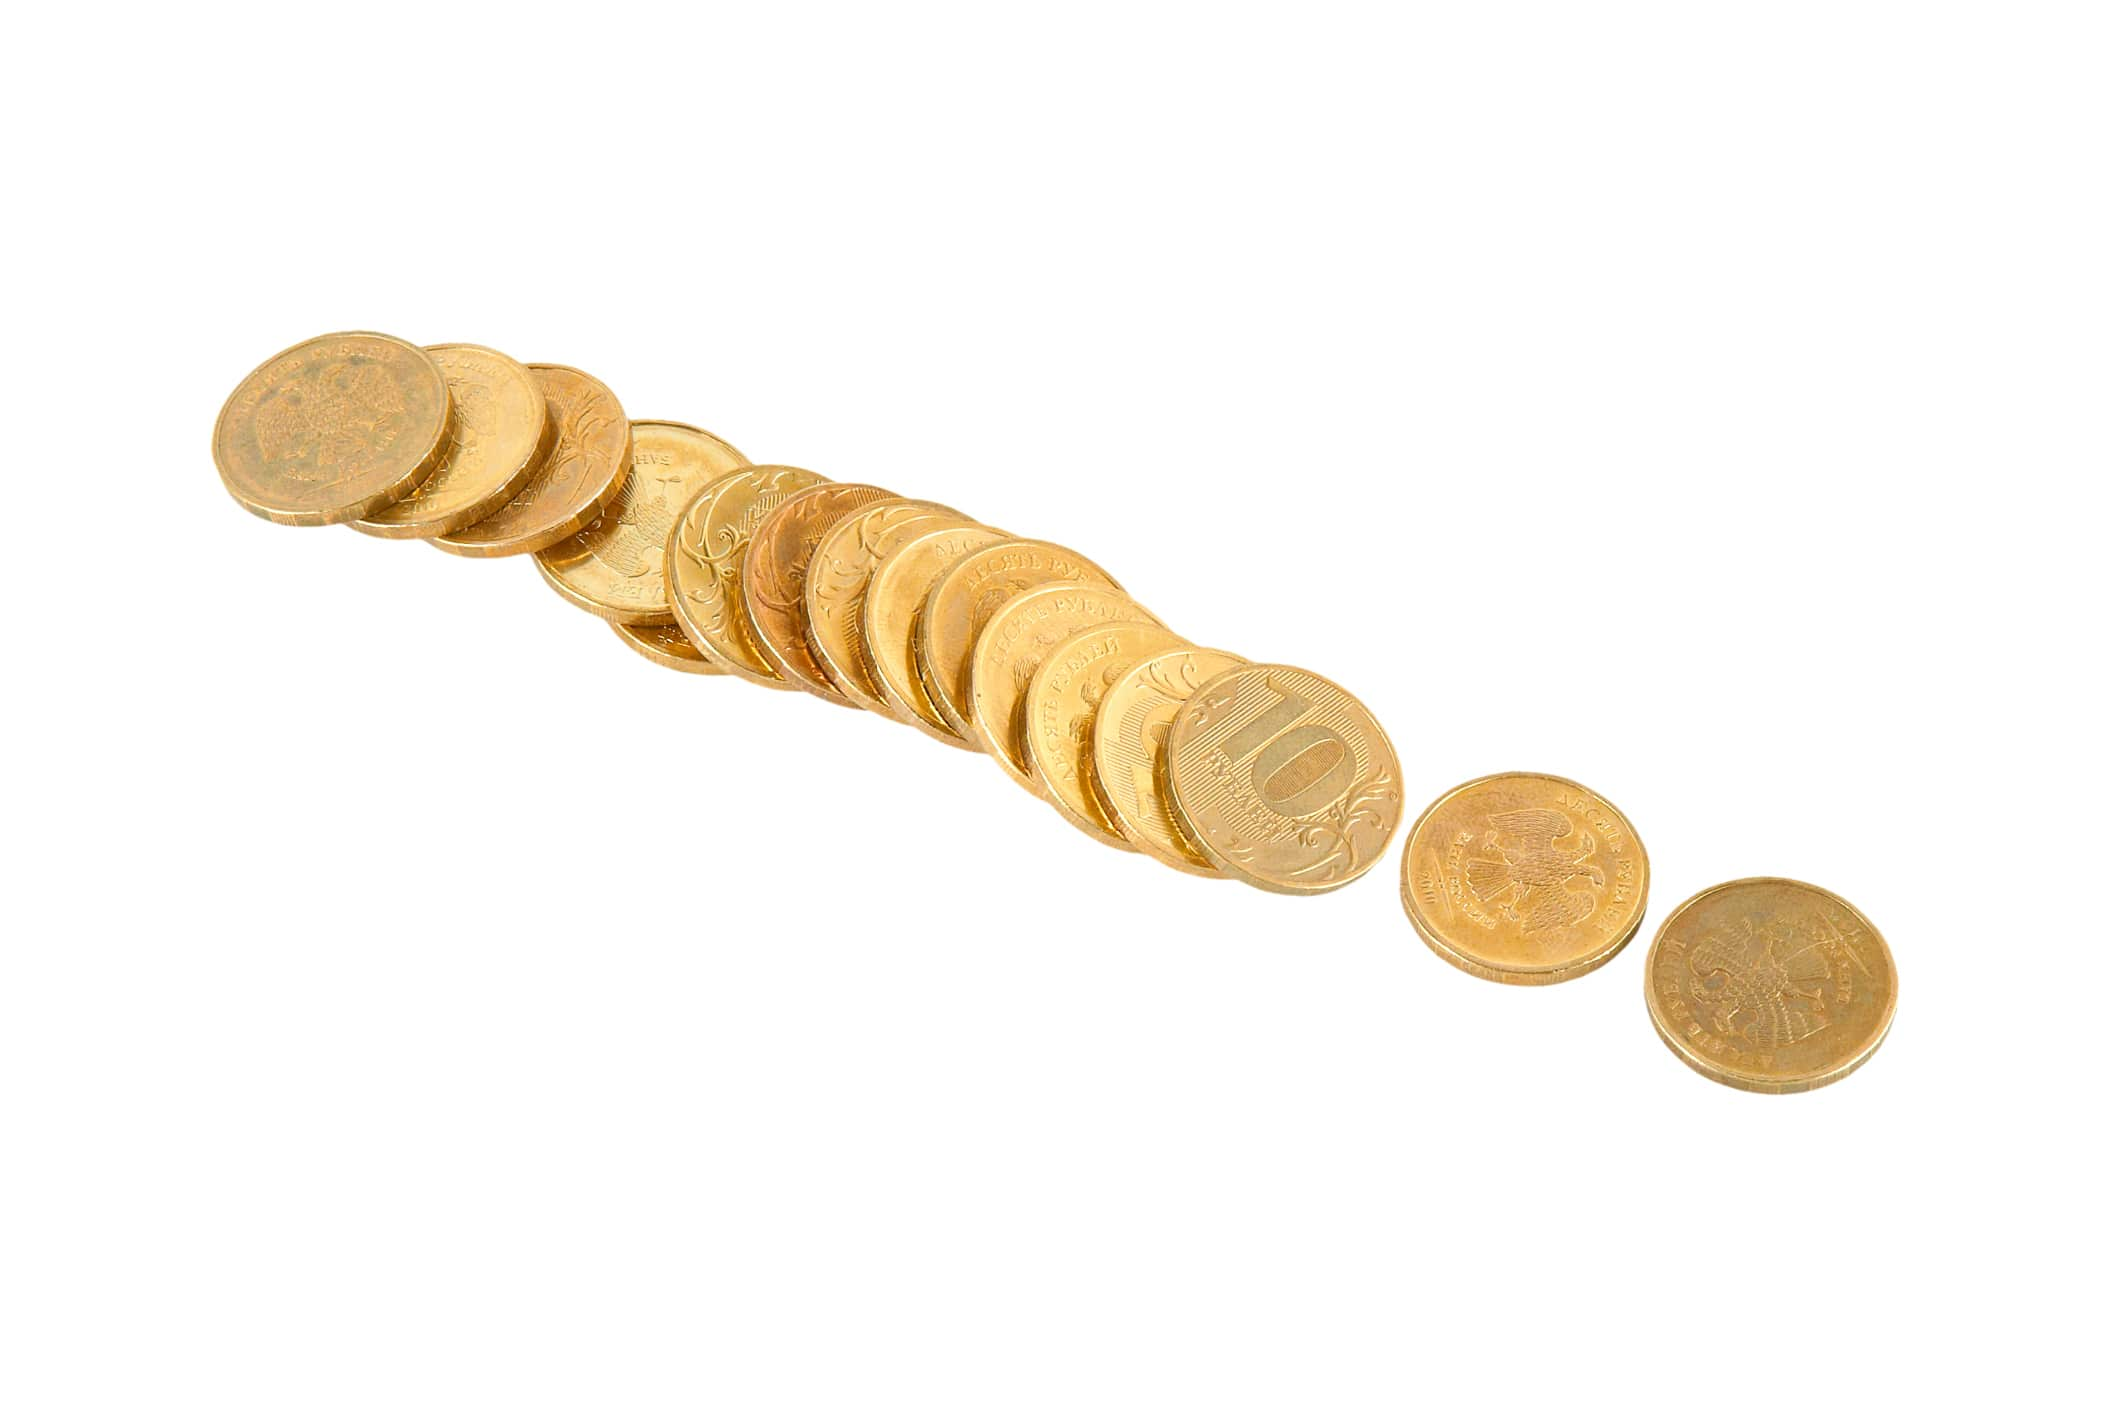 fake numismatic coins being brought into pawn shops.